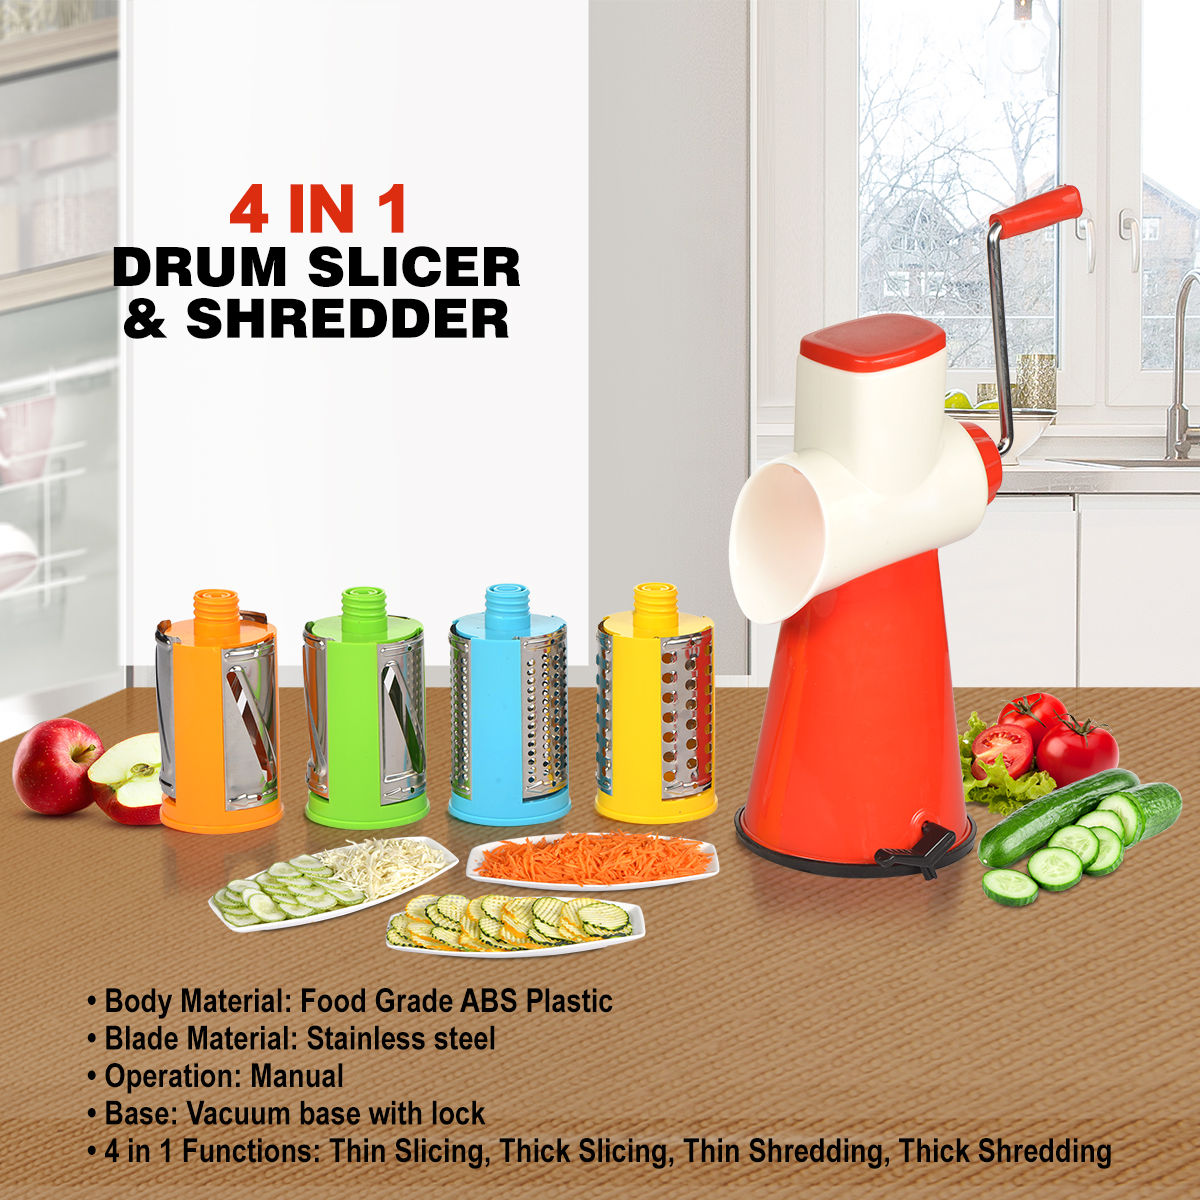 Buy 4 In 1 Drum Slicer Shredder Online At Best Price In India On